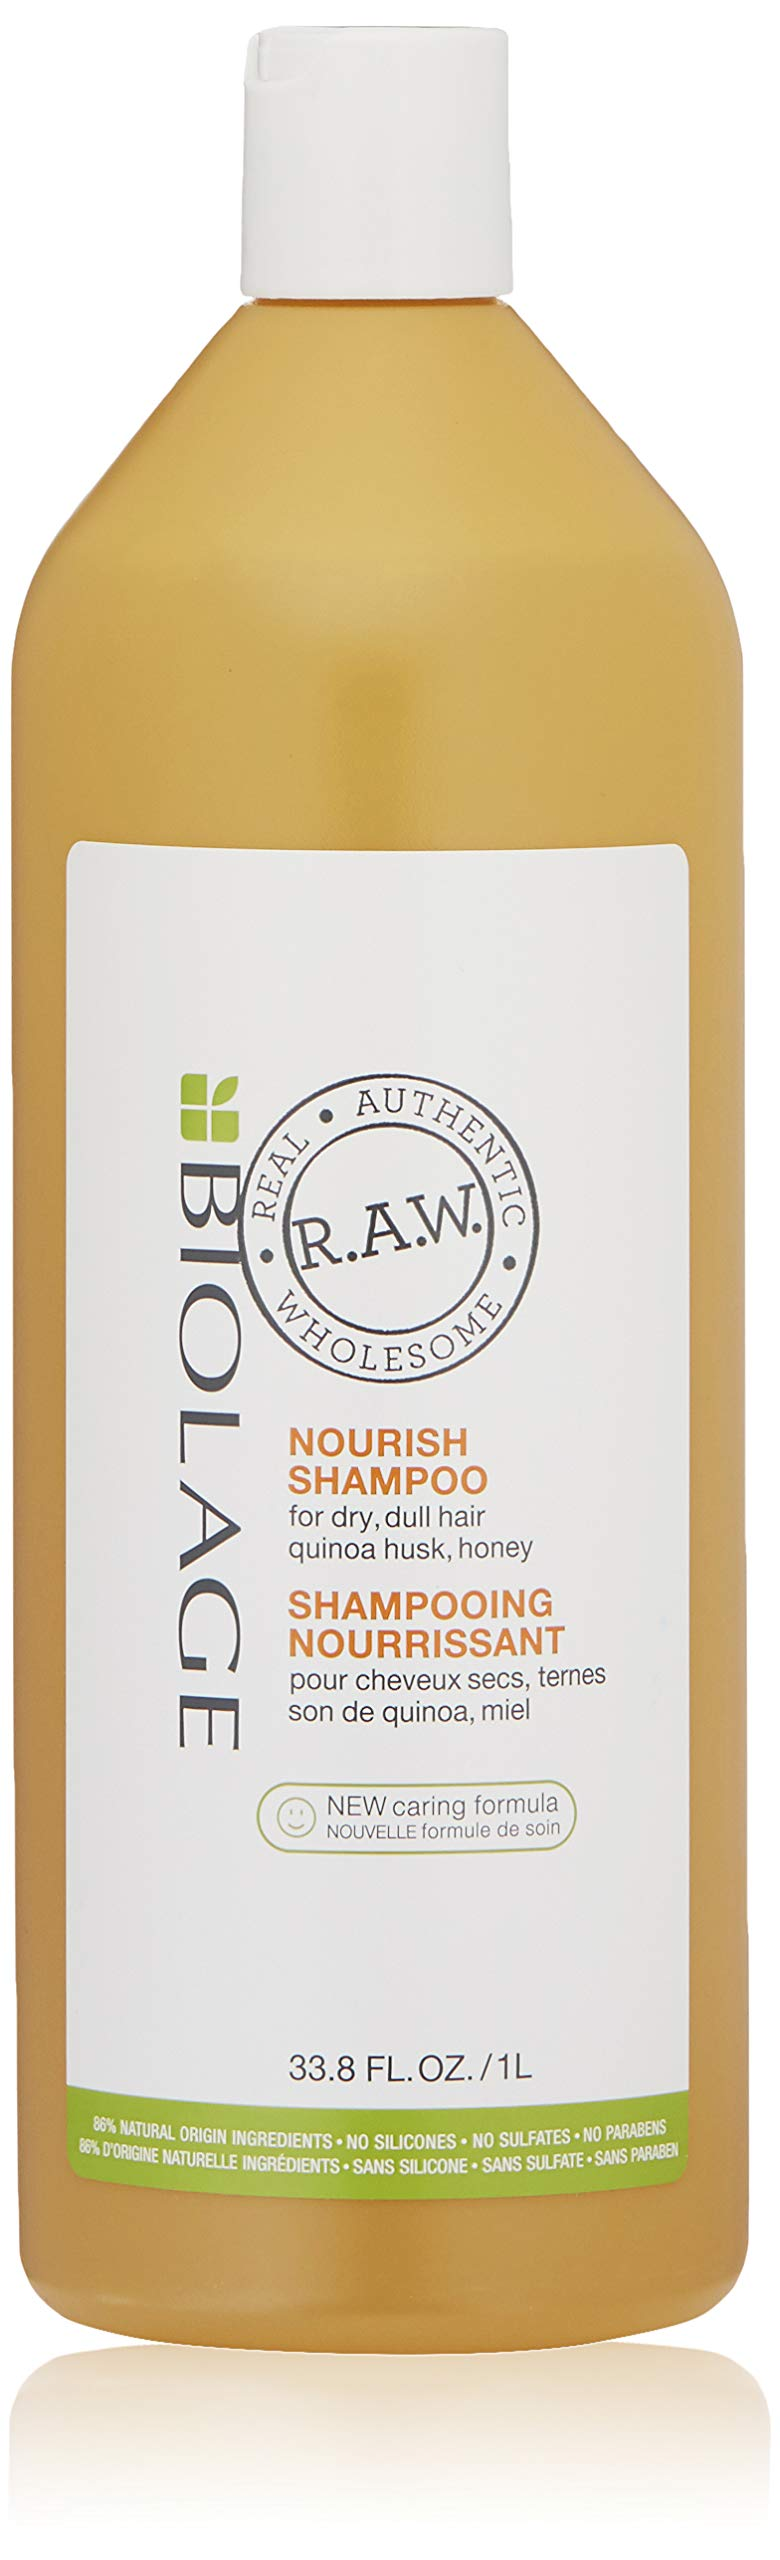 Biolage R.A.W. Nourish Shampoo for Dry, Sulfate Free, Dull Hair with Quinoa Husk and Honey, Sulfate Free, 33.8 fl. oz. by BIOLAGE